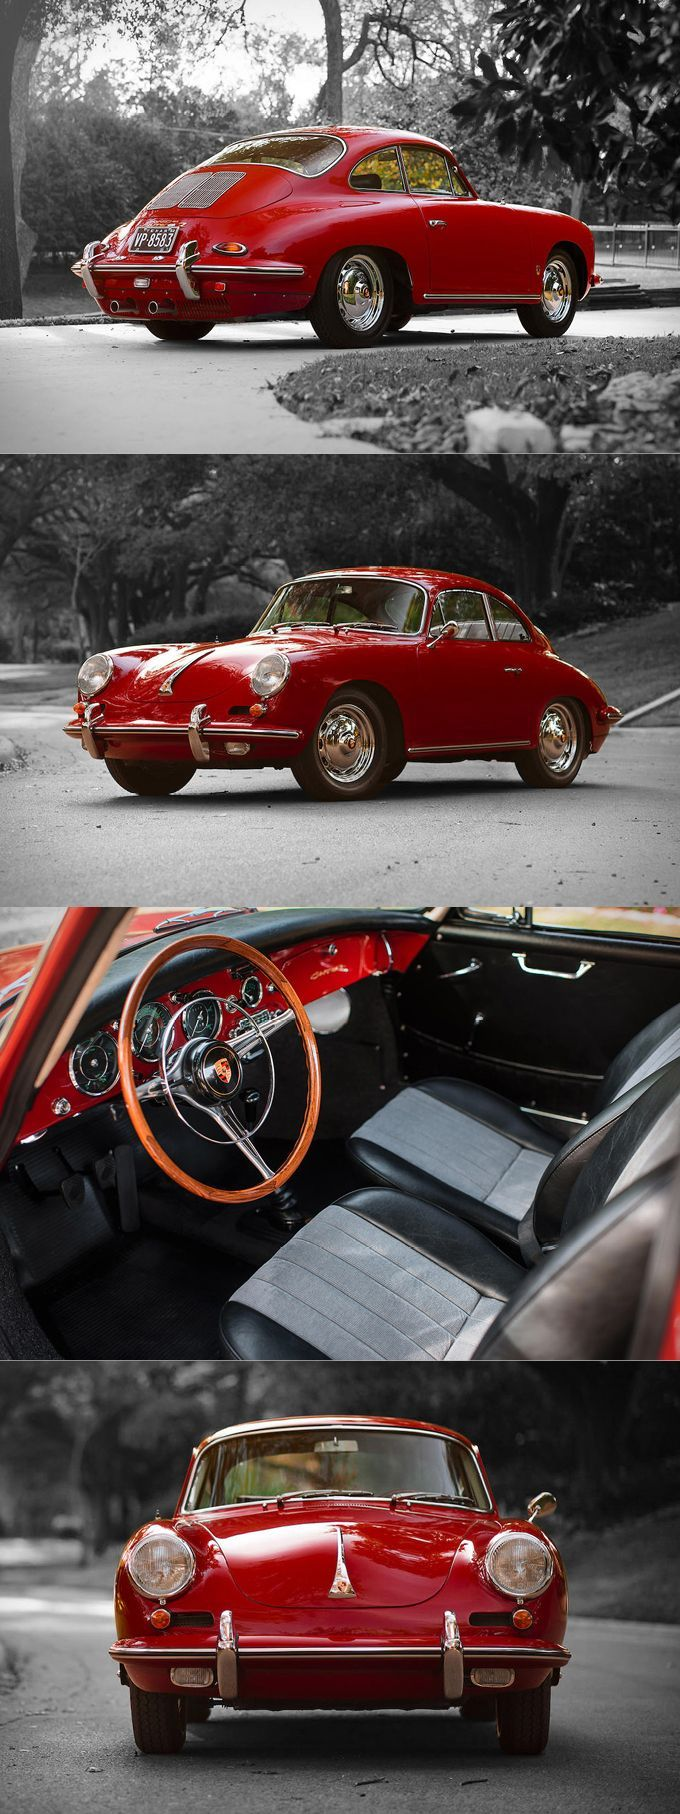 1853 Best Roulants Images On Pinterest Electric Arquitetura And Luggage Compartment Light Wiring Diagram For 1956 Studebaker Passenger Car My Favorite Is This But The Bathtub Porsche 1962 356 Carrera 2 310 Produced Red Germany